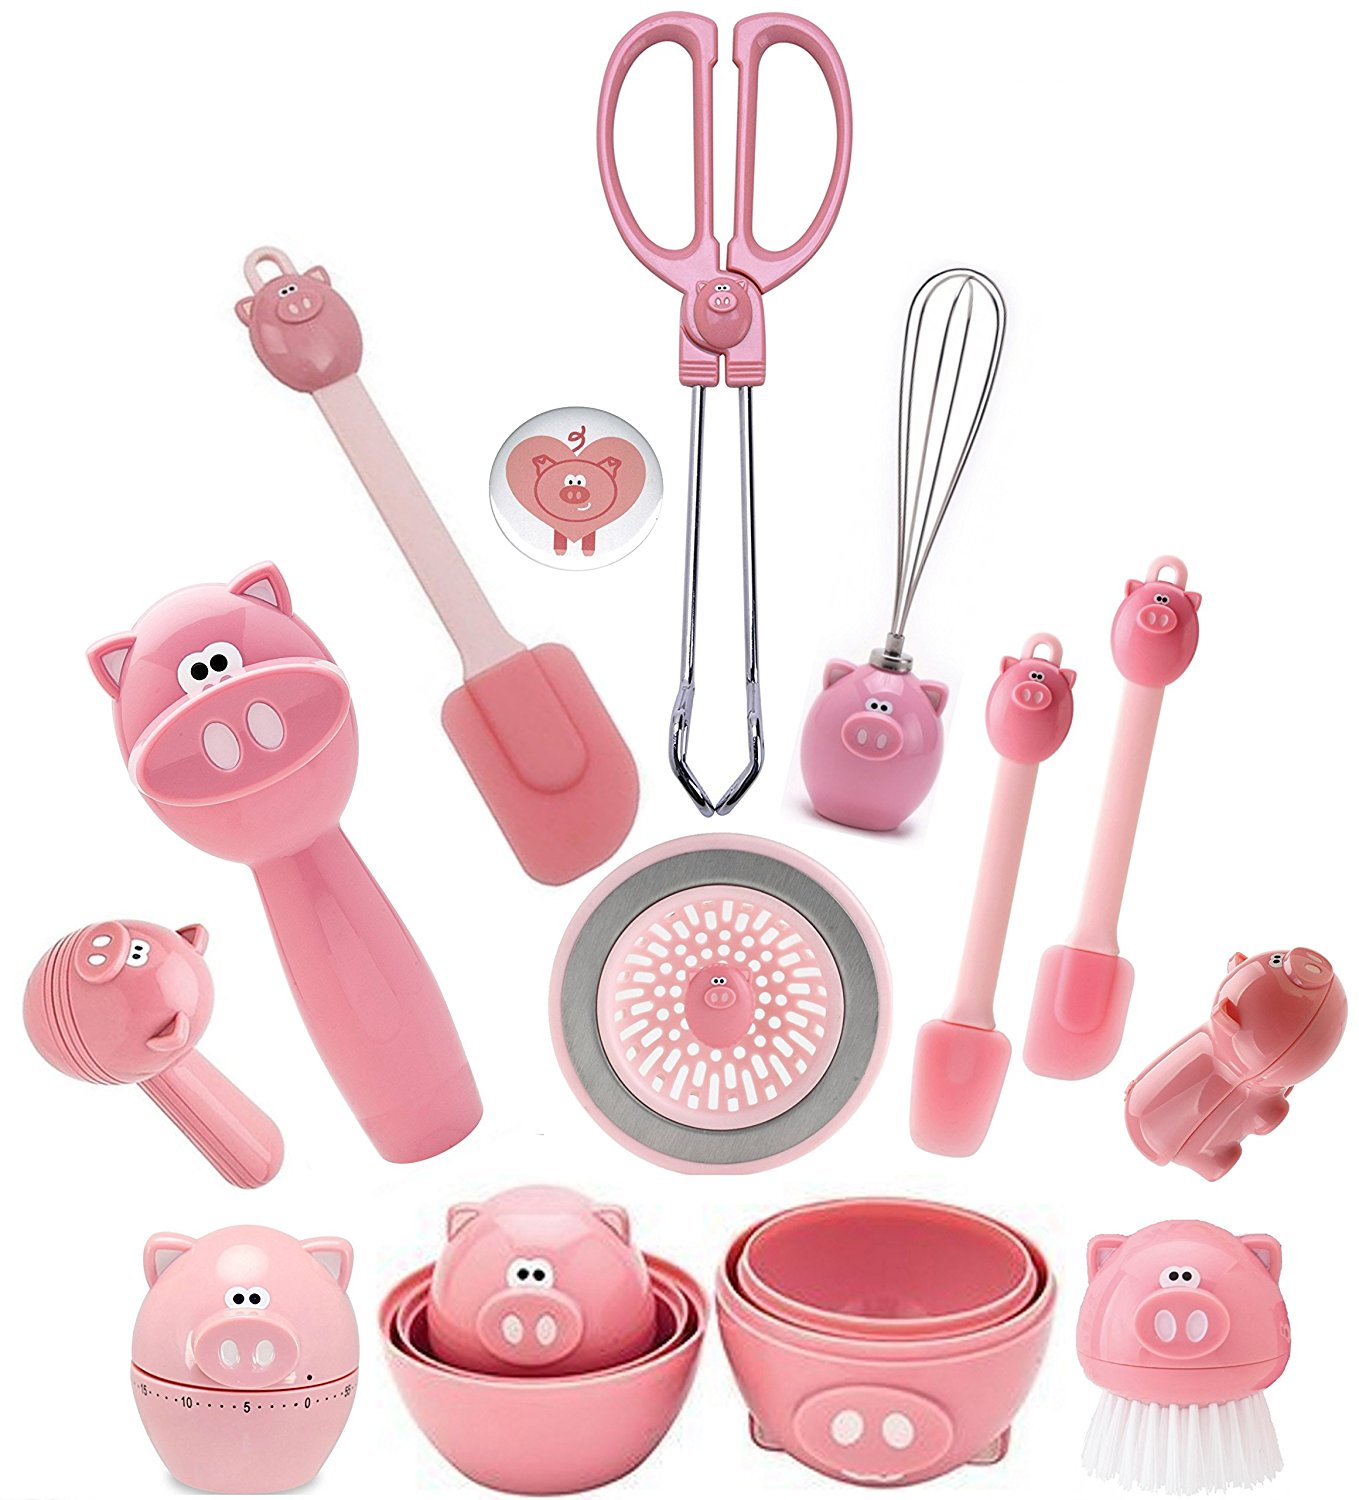 Joie Oink Oink Kitchen Gadgets Set Of 12 Home